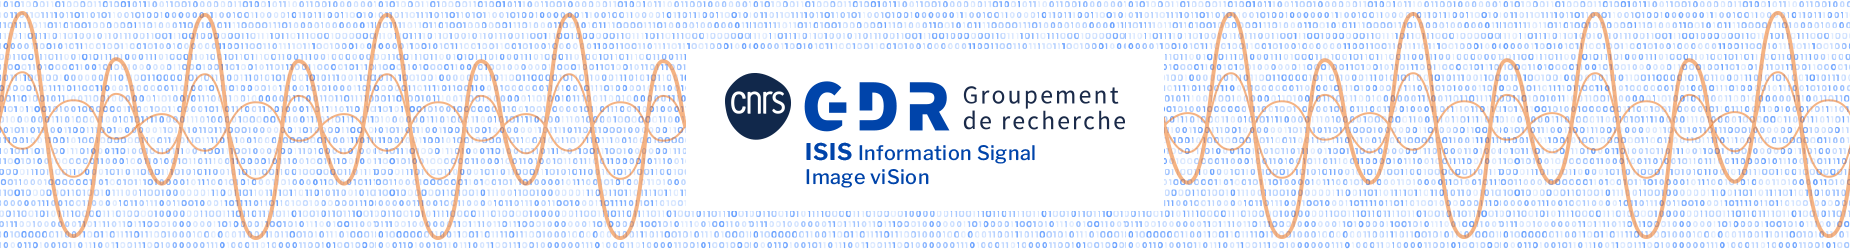 GdR ISIS